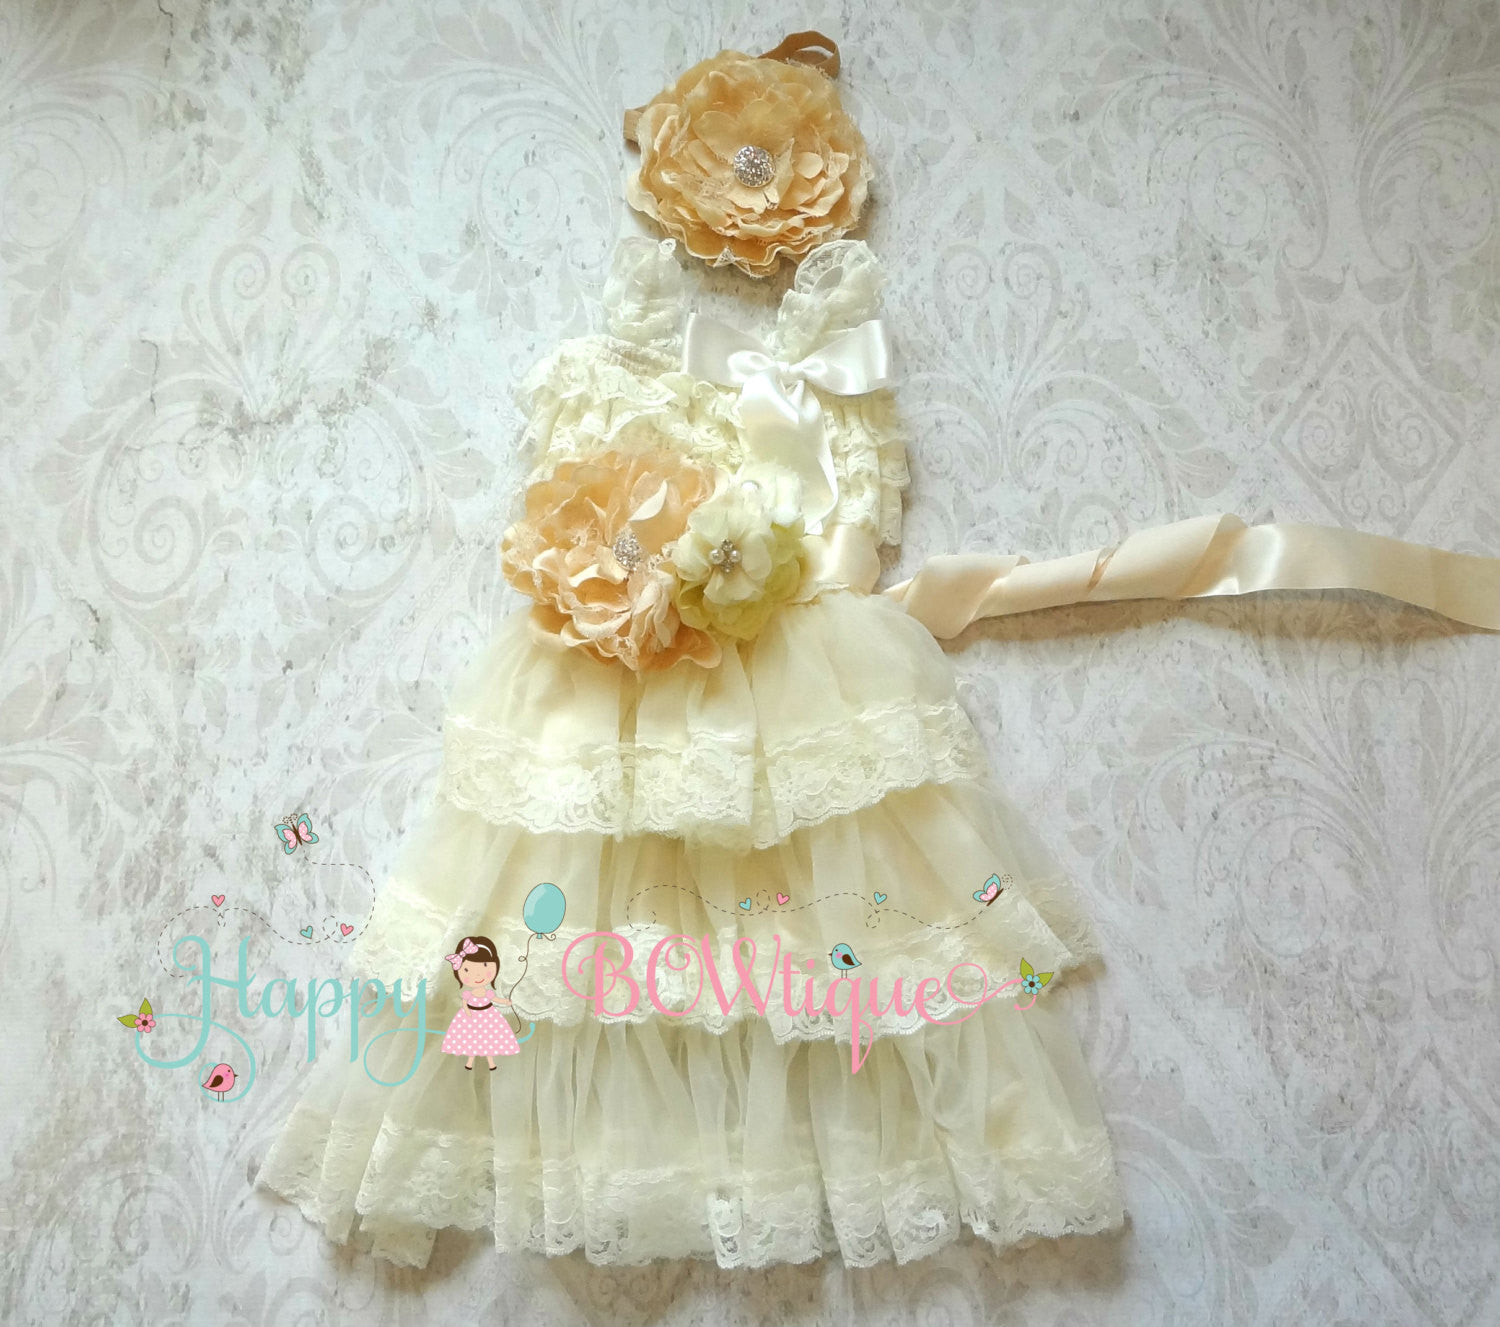 Embellished Flower girls dress / Ivory Champagne Embellished dress set - Happy BOWtique - children's clothing, Baby Girl clothing